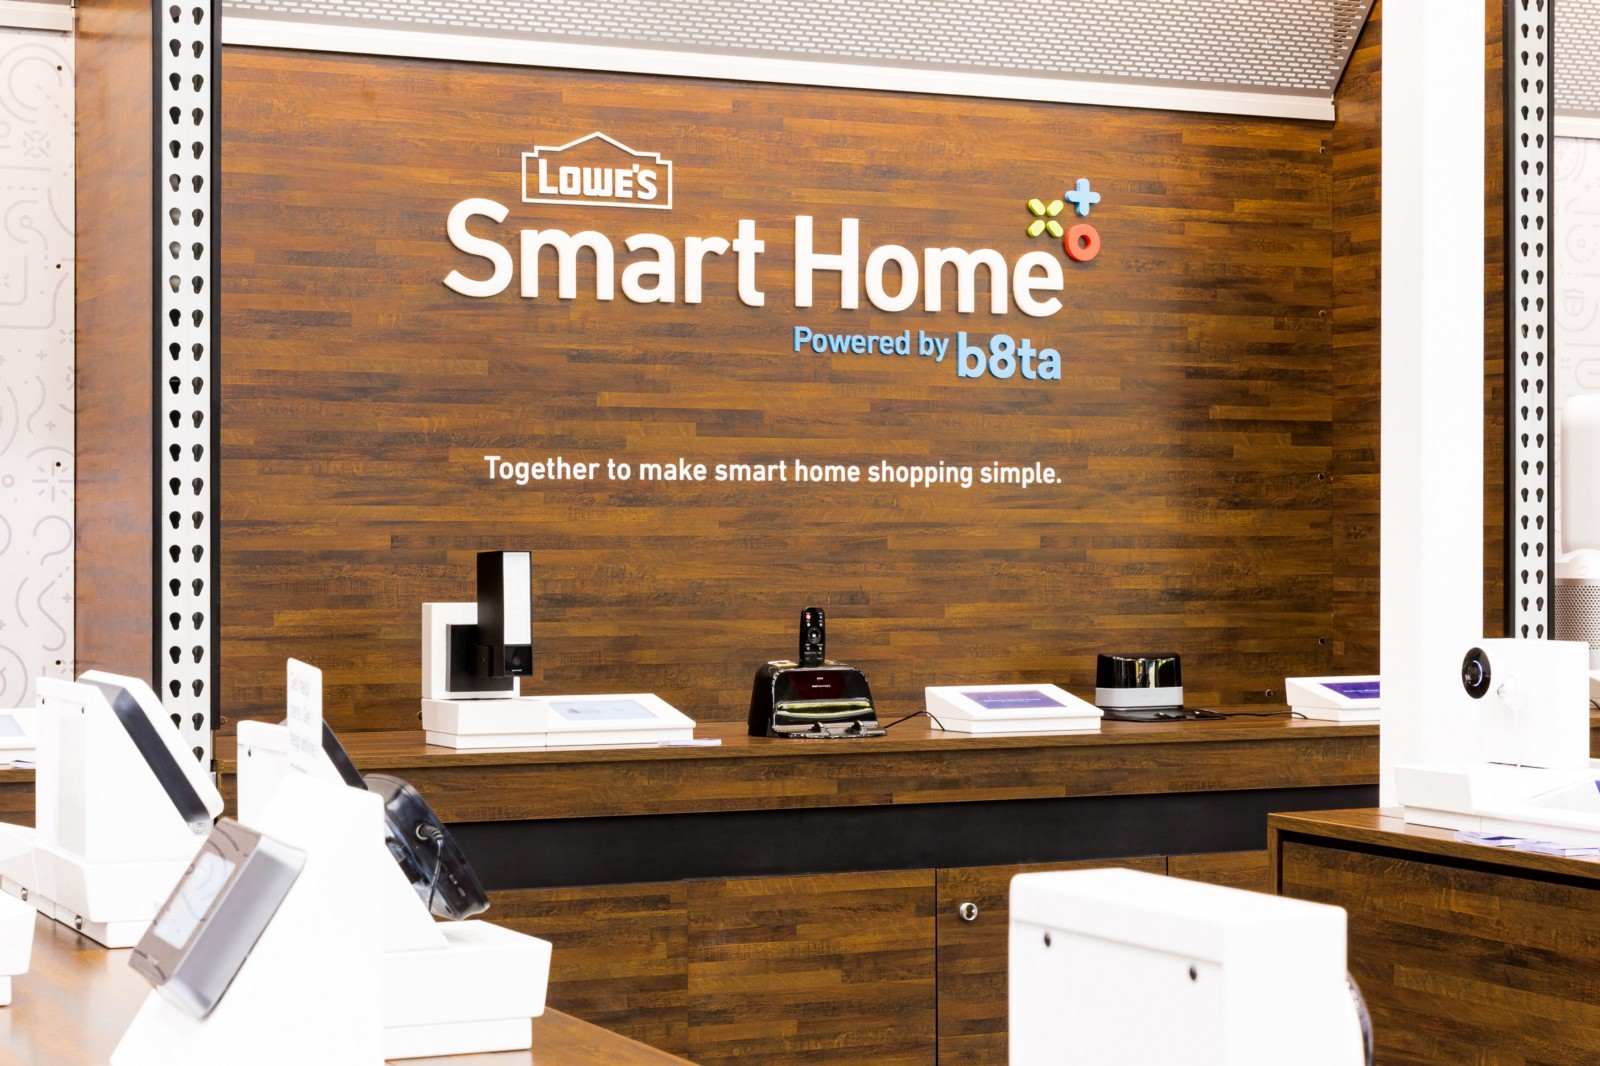 How One Retailer Improved Its Smart Home Product Sales By